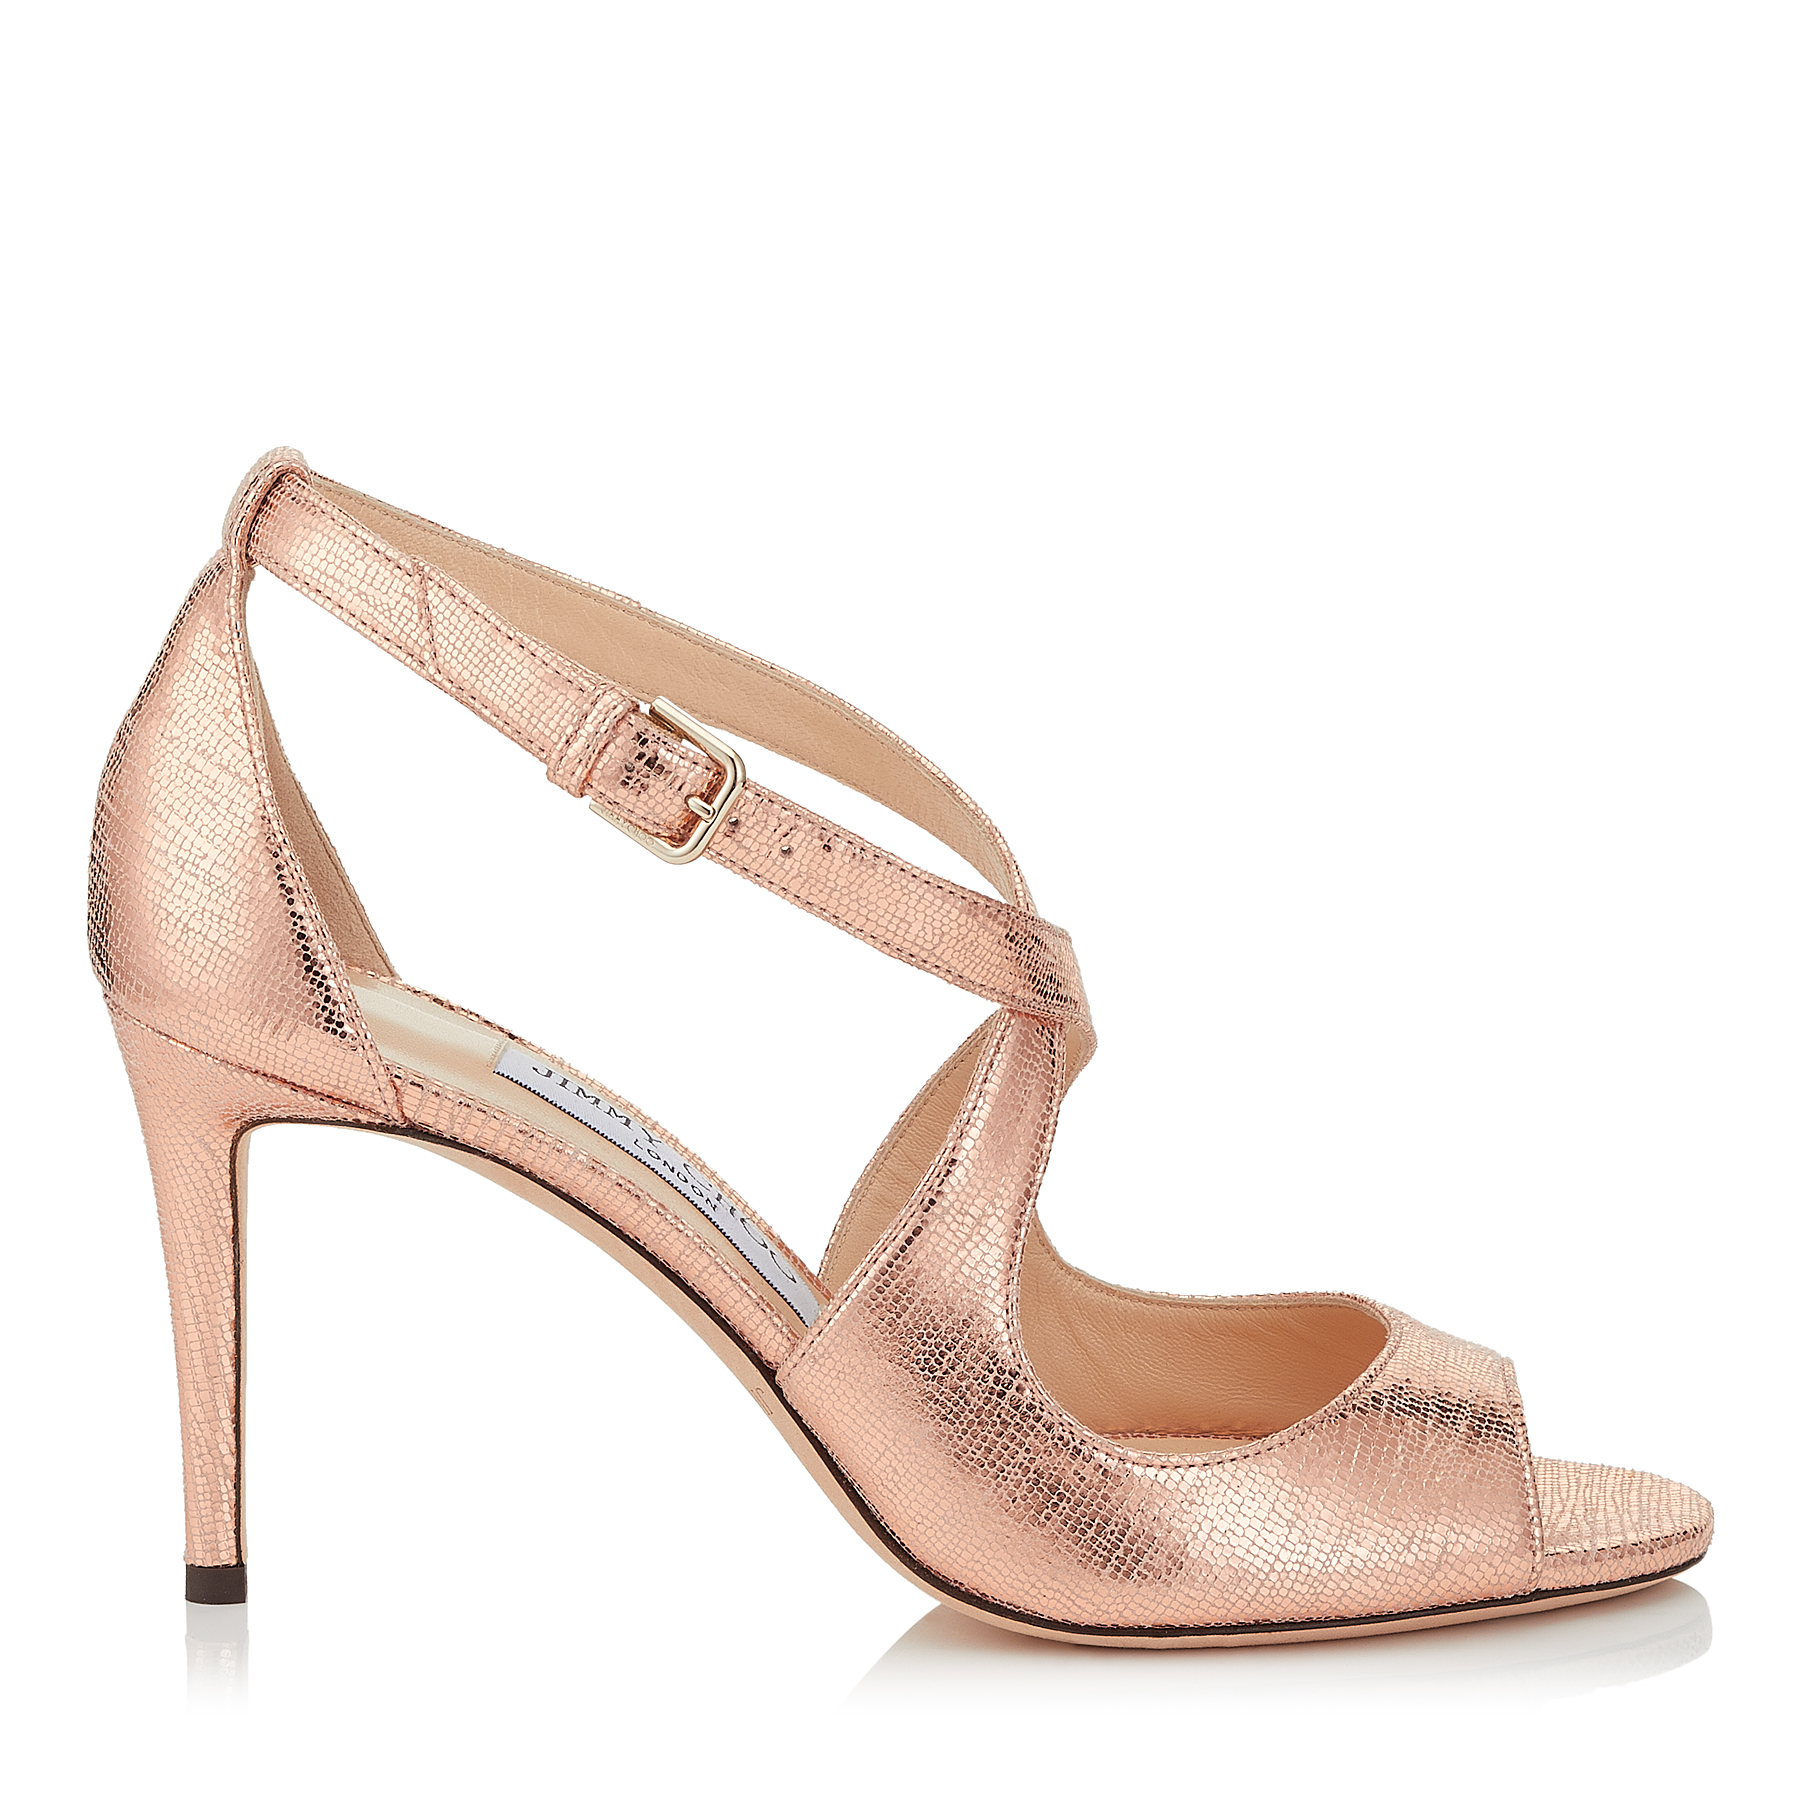 EMILY 85 Metallic Printed Leather Sandals by Jimmy Choo